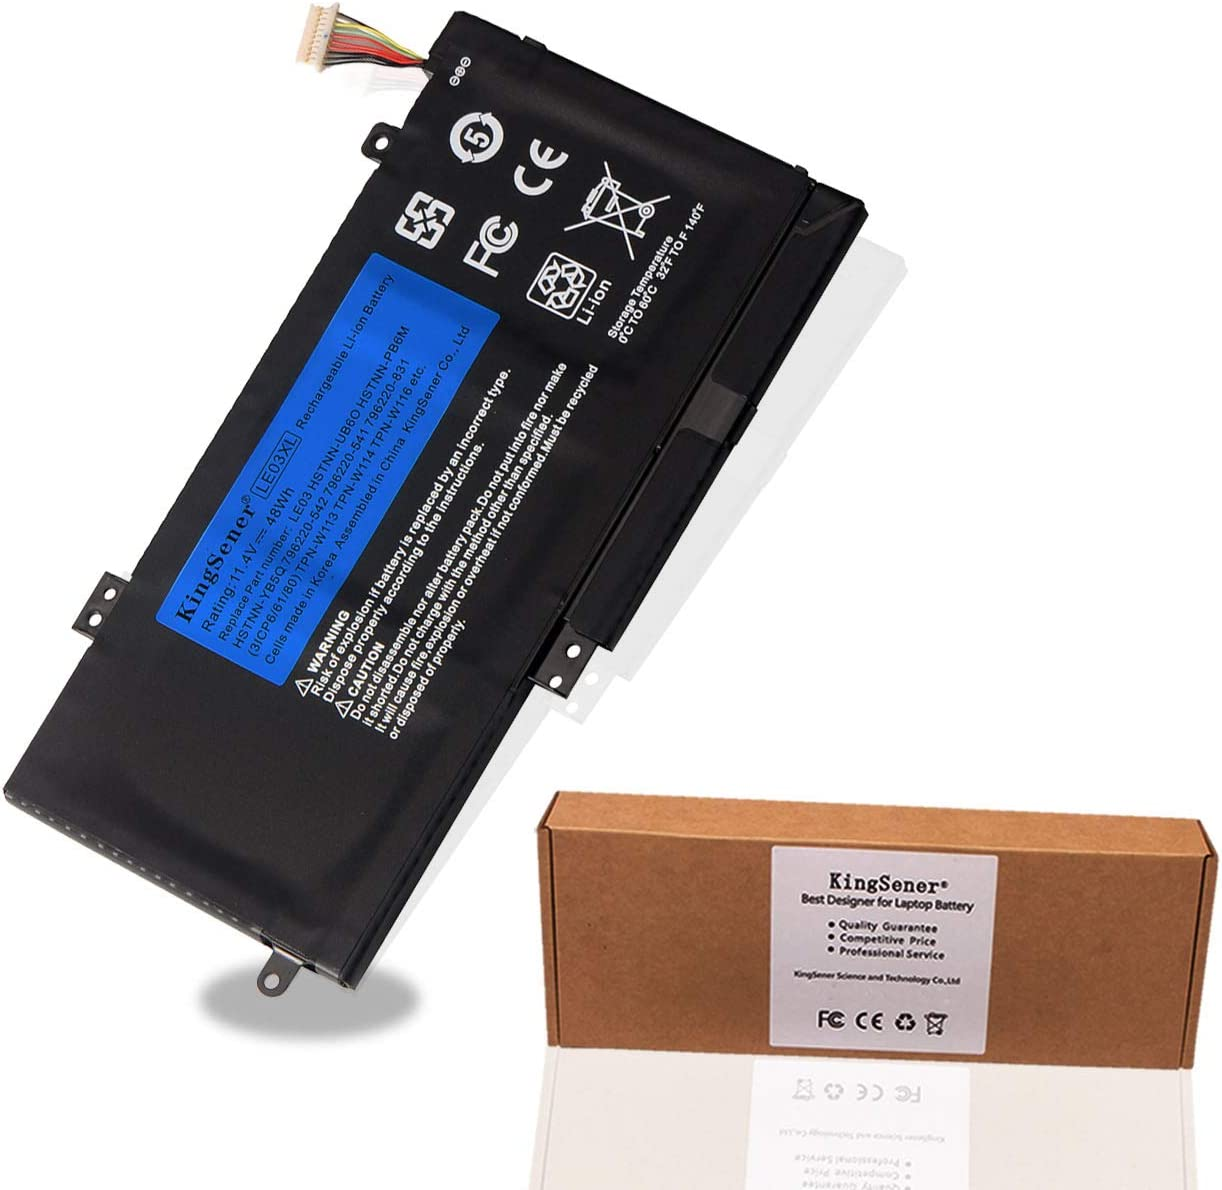 KingSener LE03XL Battery for HP LE03XL LE03 HSTNN-PB6M HSTNN-YB5Q 796356-005 for HP Envy X360 M6-W101dx W102dx W103dx W010dx, Pavilion X360 13-s000 13-s120nr 15-bk000 Laptop